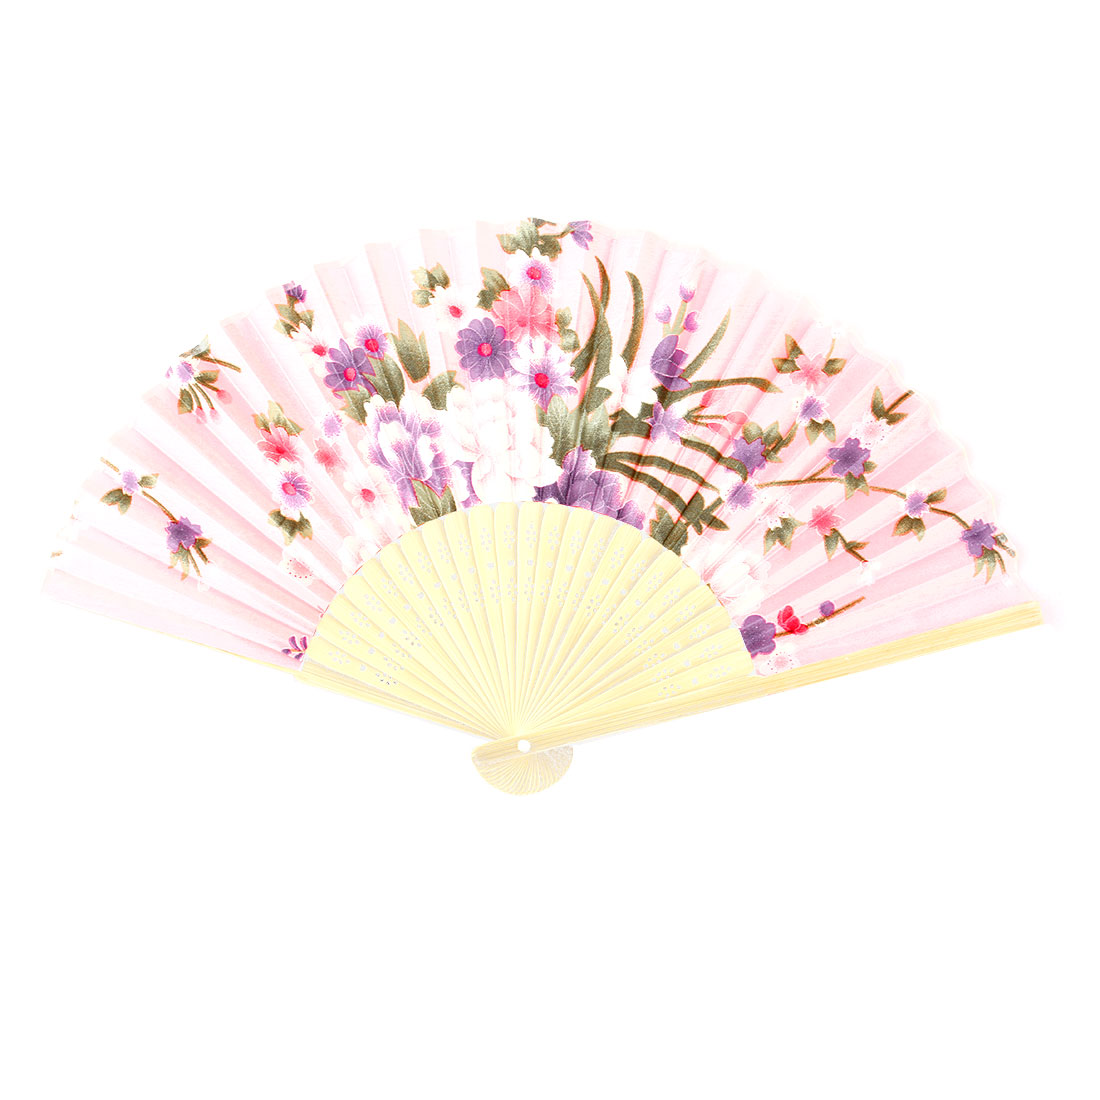 Household Bamboo Frame Flower Pattern Decorative Craft Folding Hand Fan Colorful